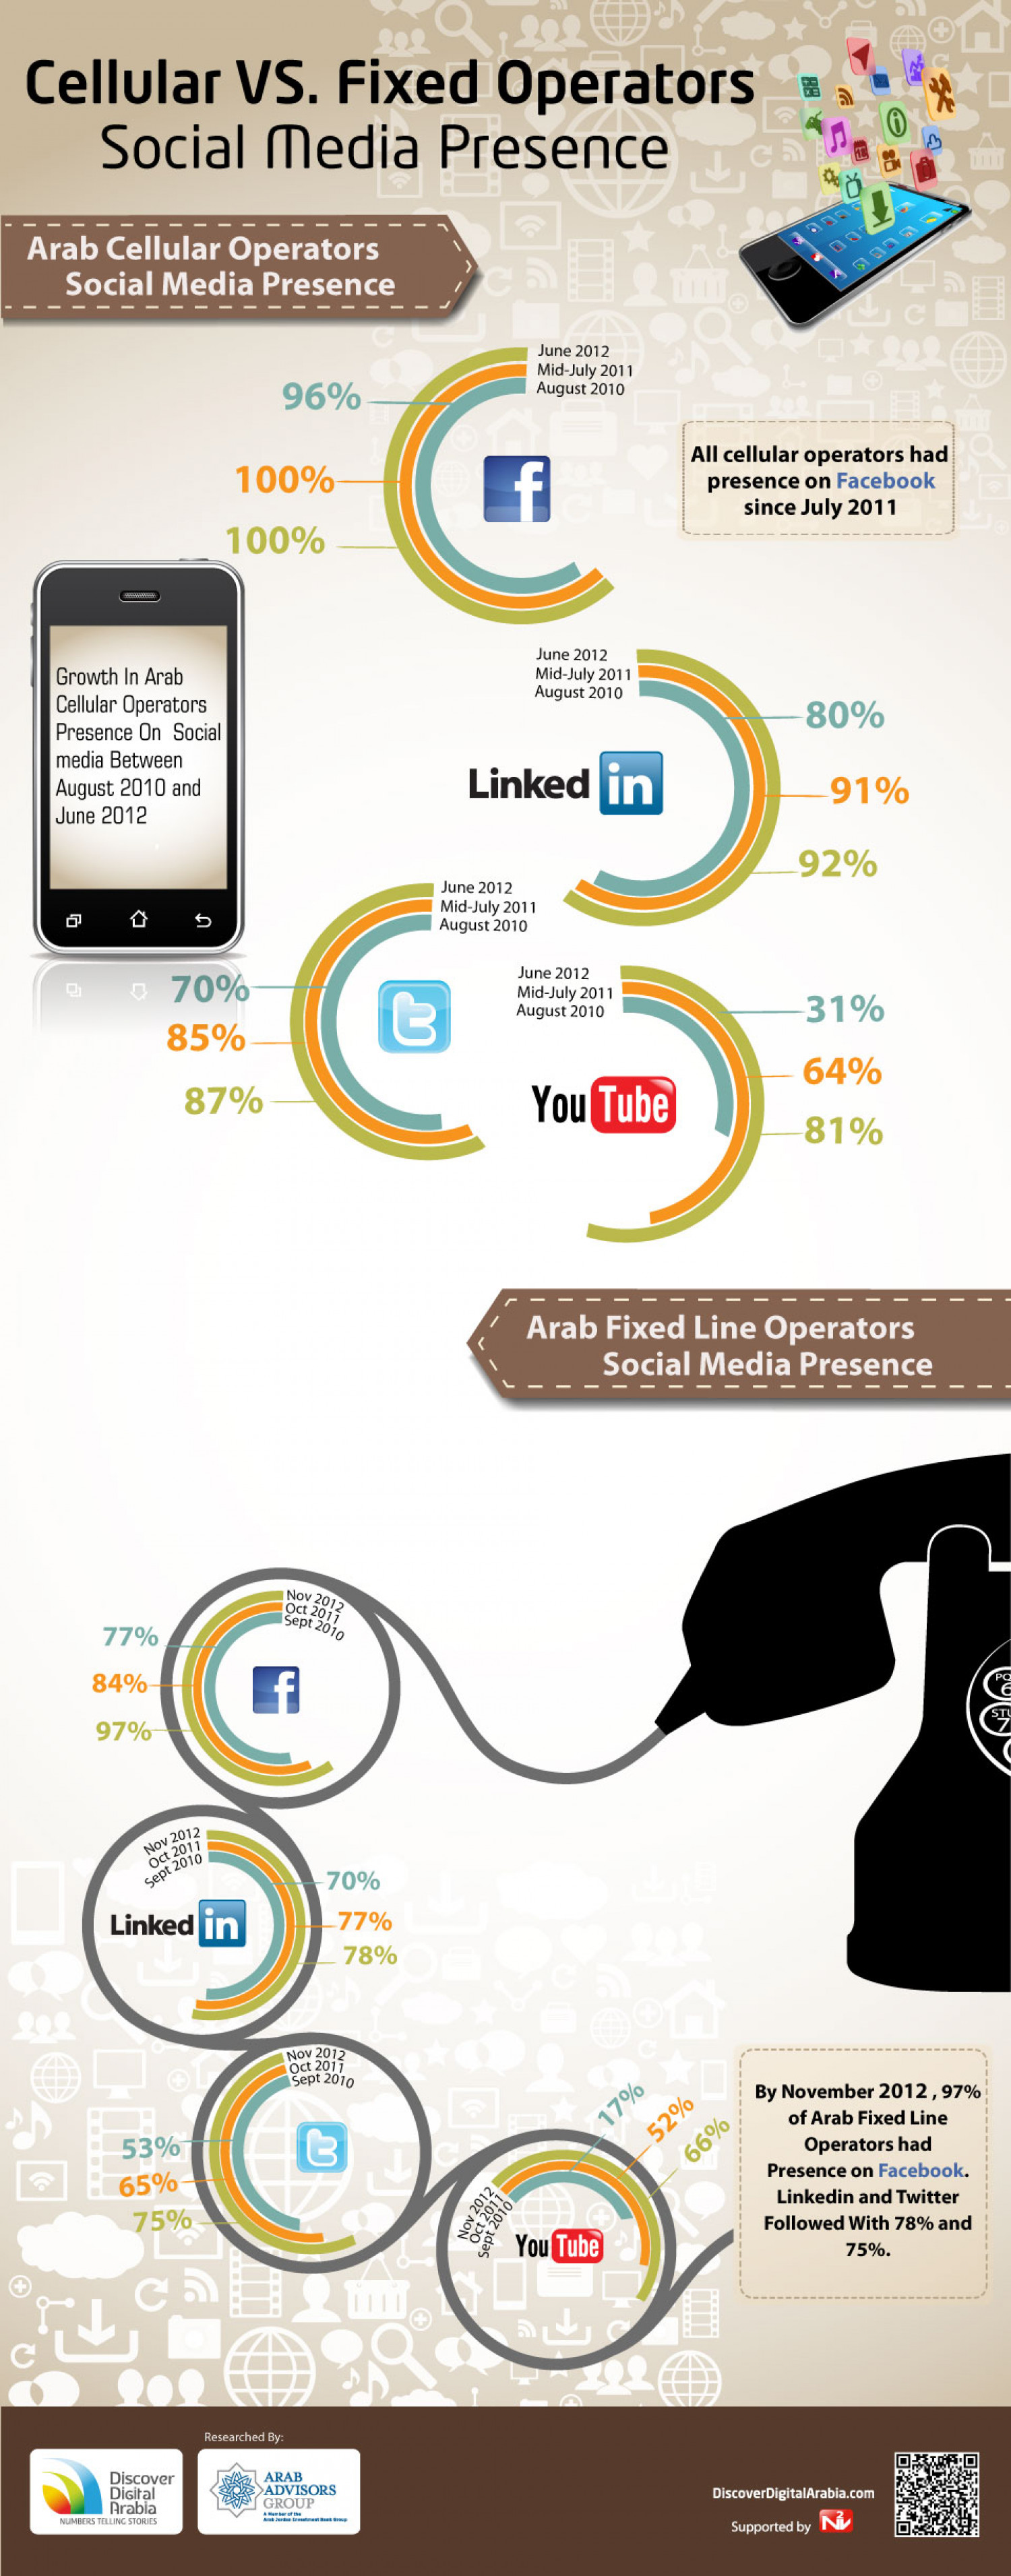 Cellular VS. Fixed Operators Social Media Presence Infographic